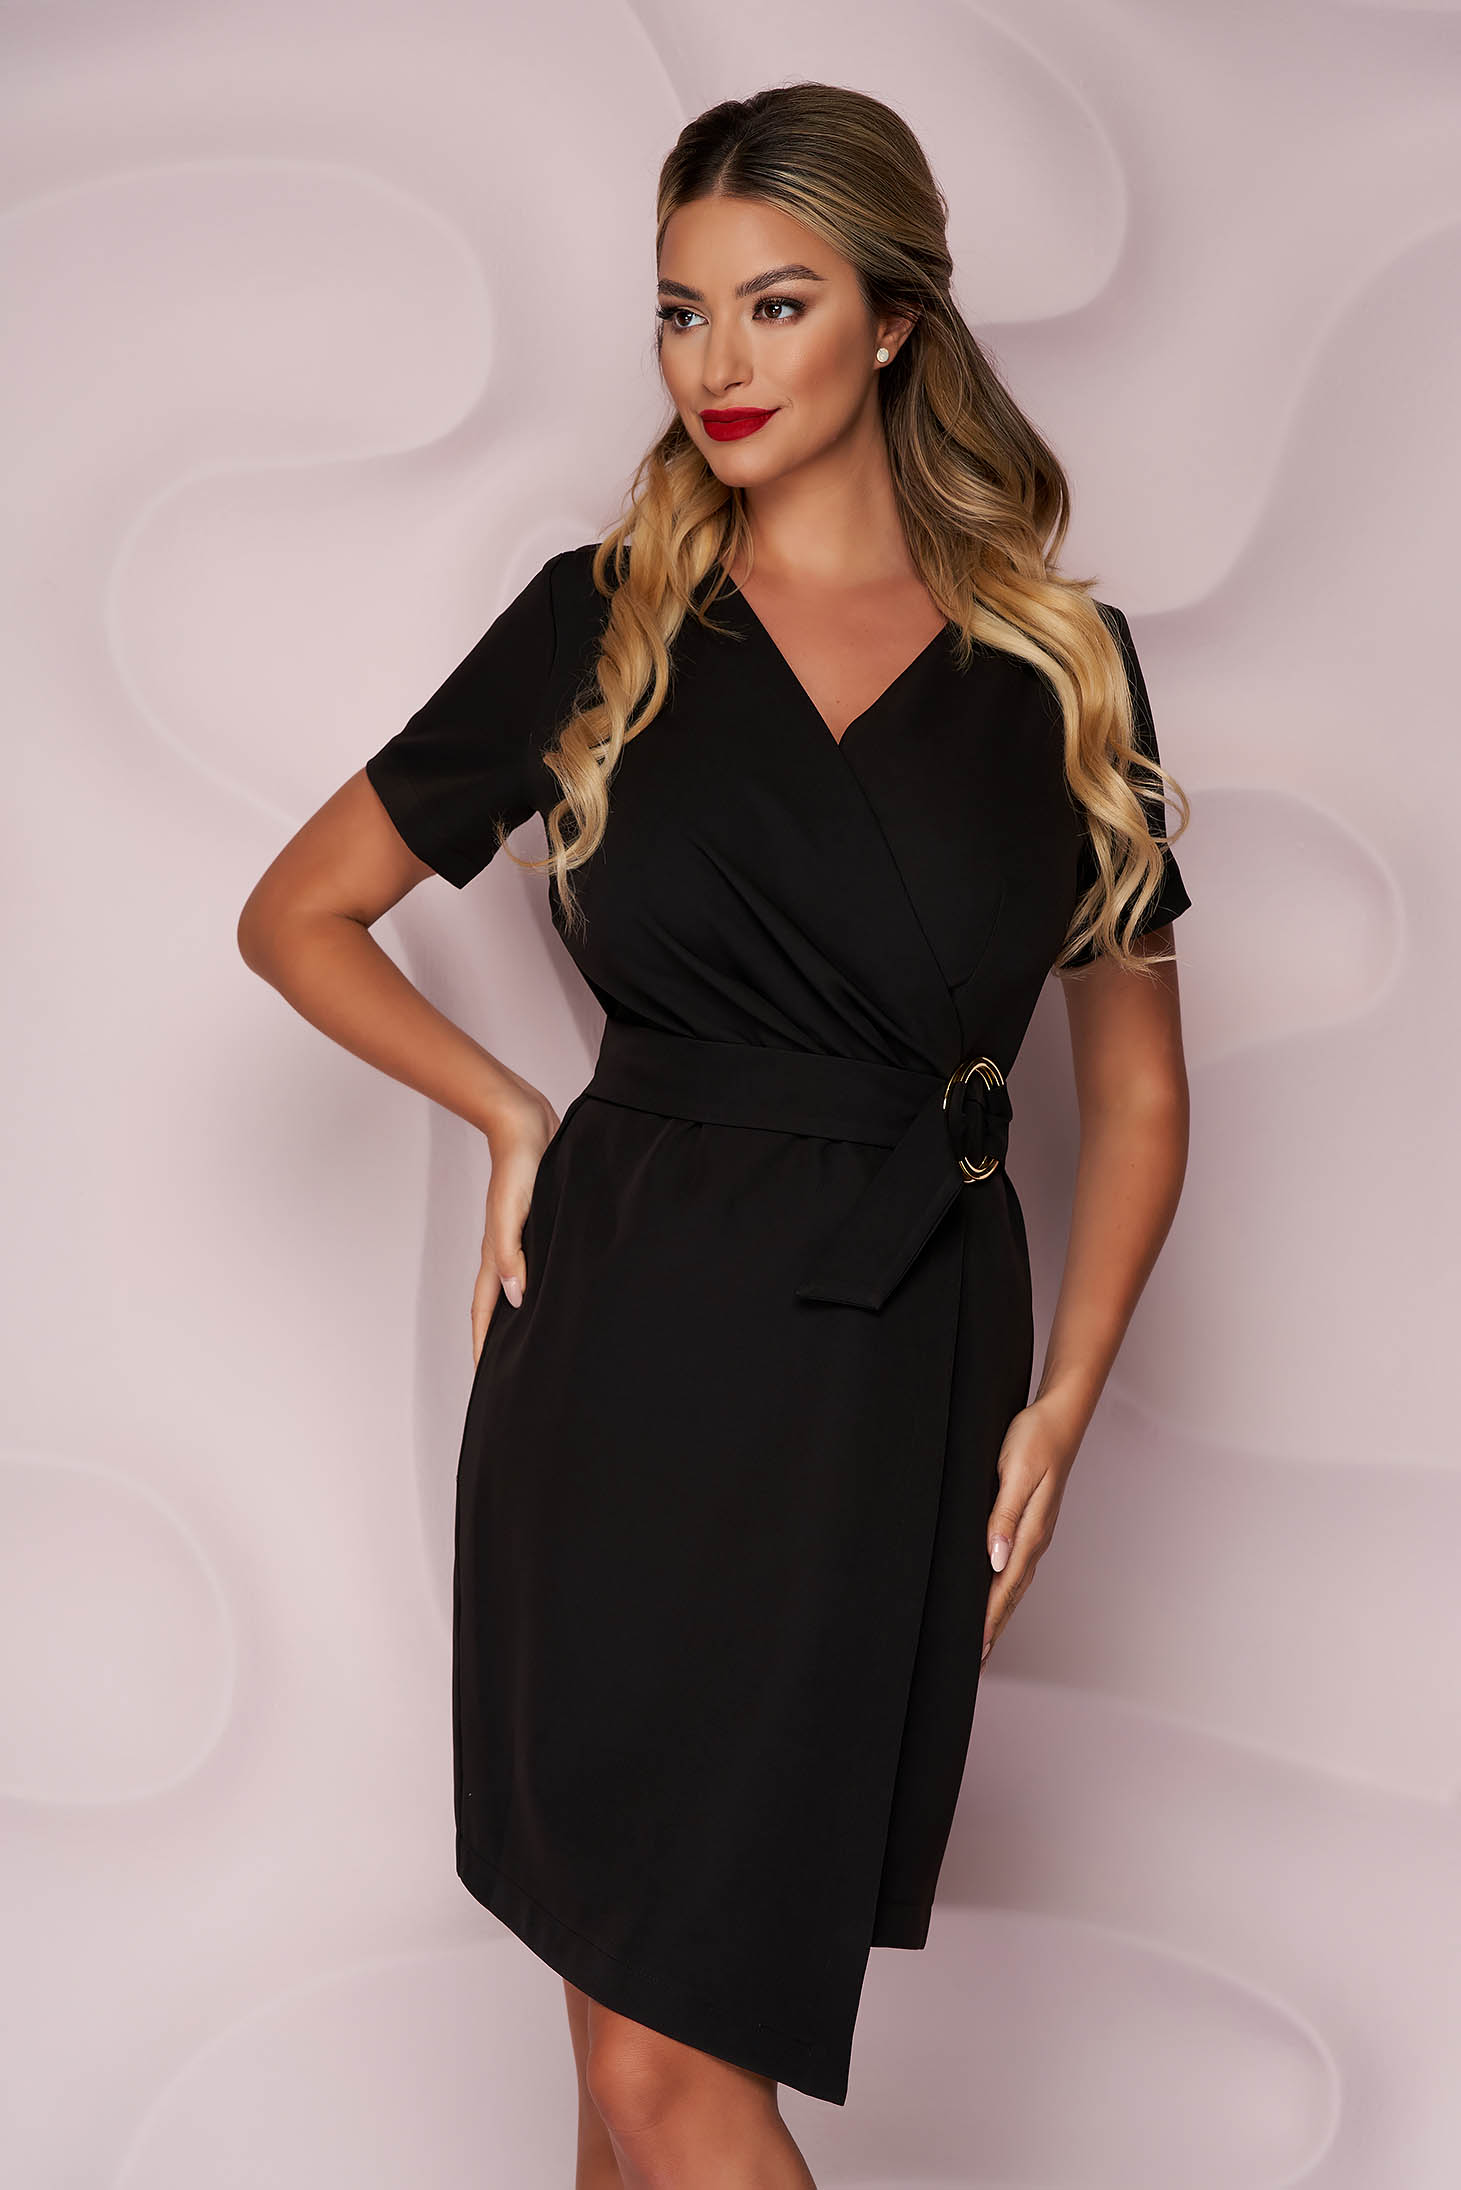 StarShinerS black dress office pencil cloth thin fabric wrap over skirt accessorized with tied waistband